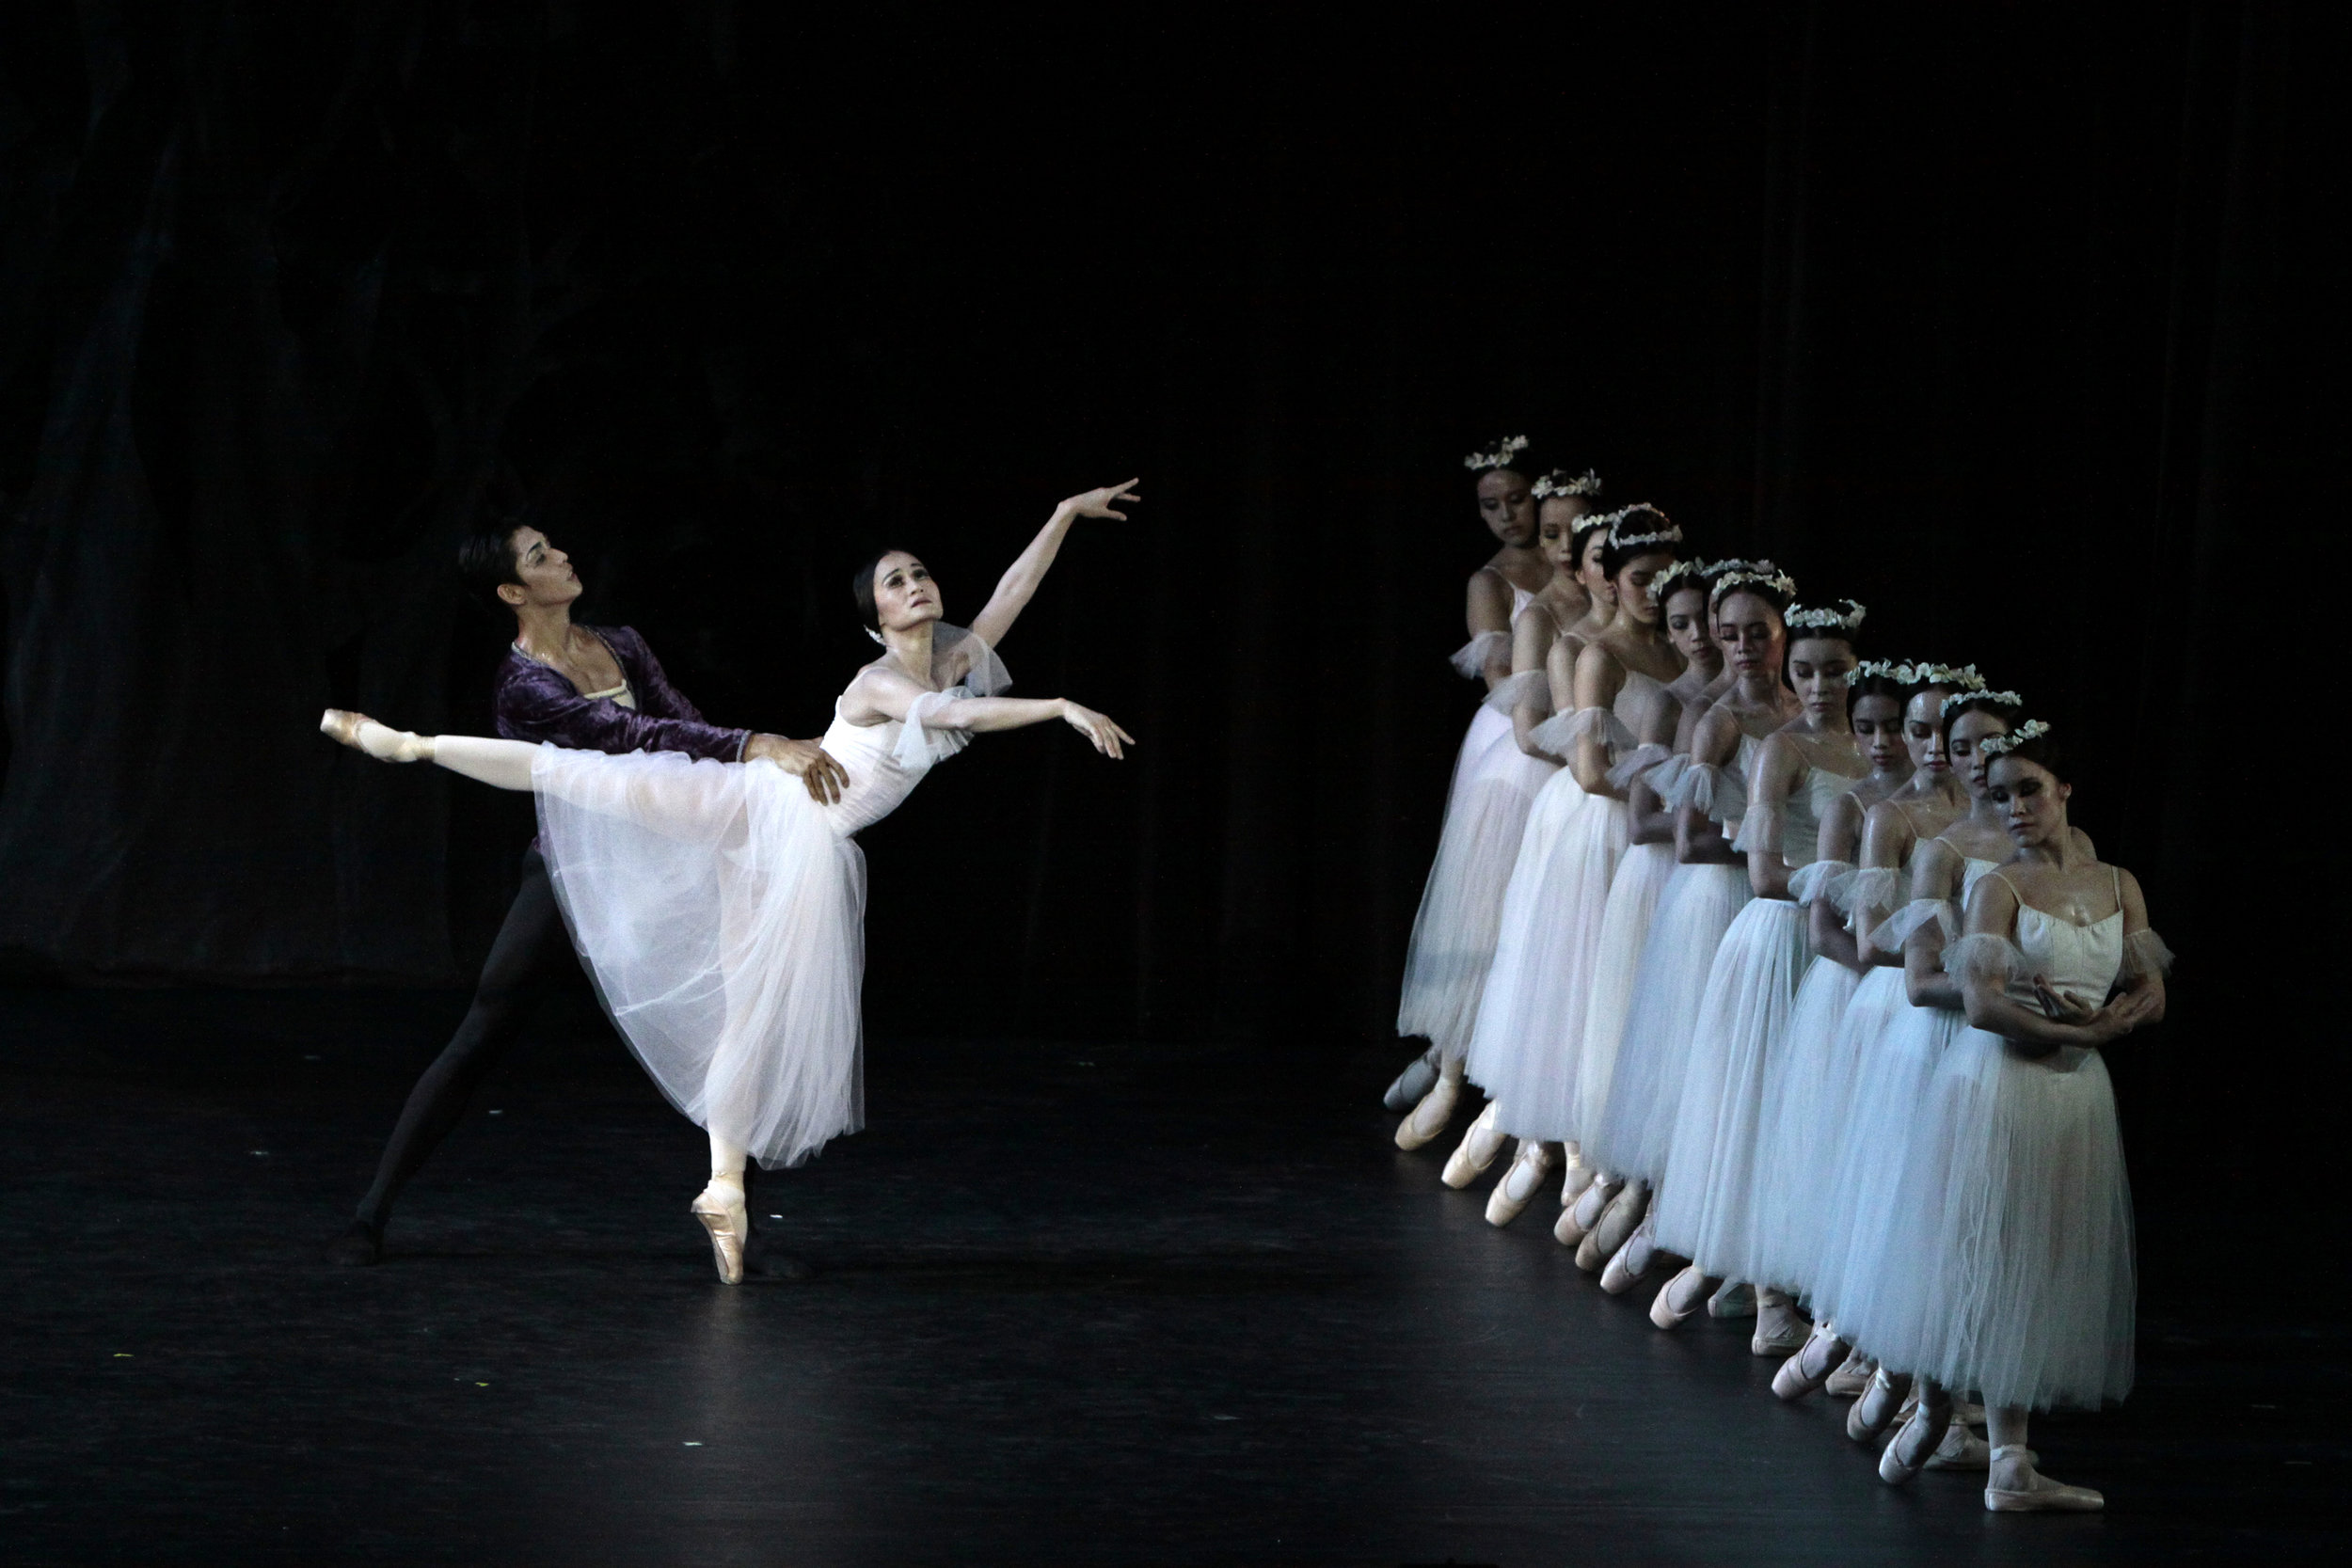 A poignant scene from Giselle is recreated by Nazer Salgado and Lisa Macuja-Elizalde, together with the Ballet Manila corps, in the company's 2010 staging of the dance classic. Photo by Ocs Alvarez from the Ballet Manila Archives collection